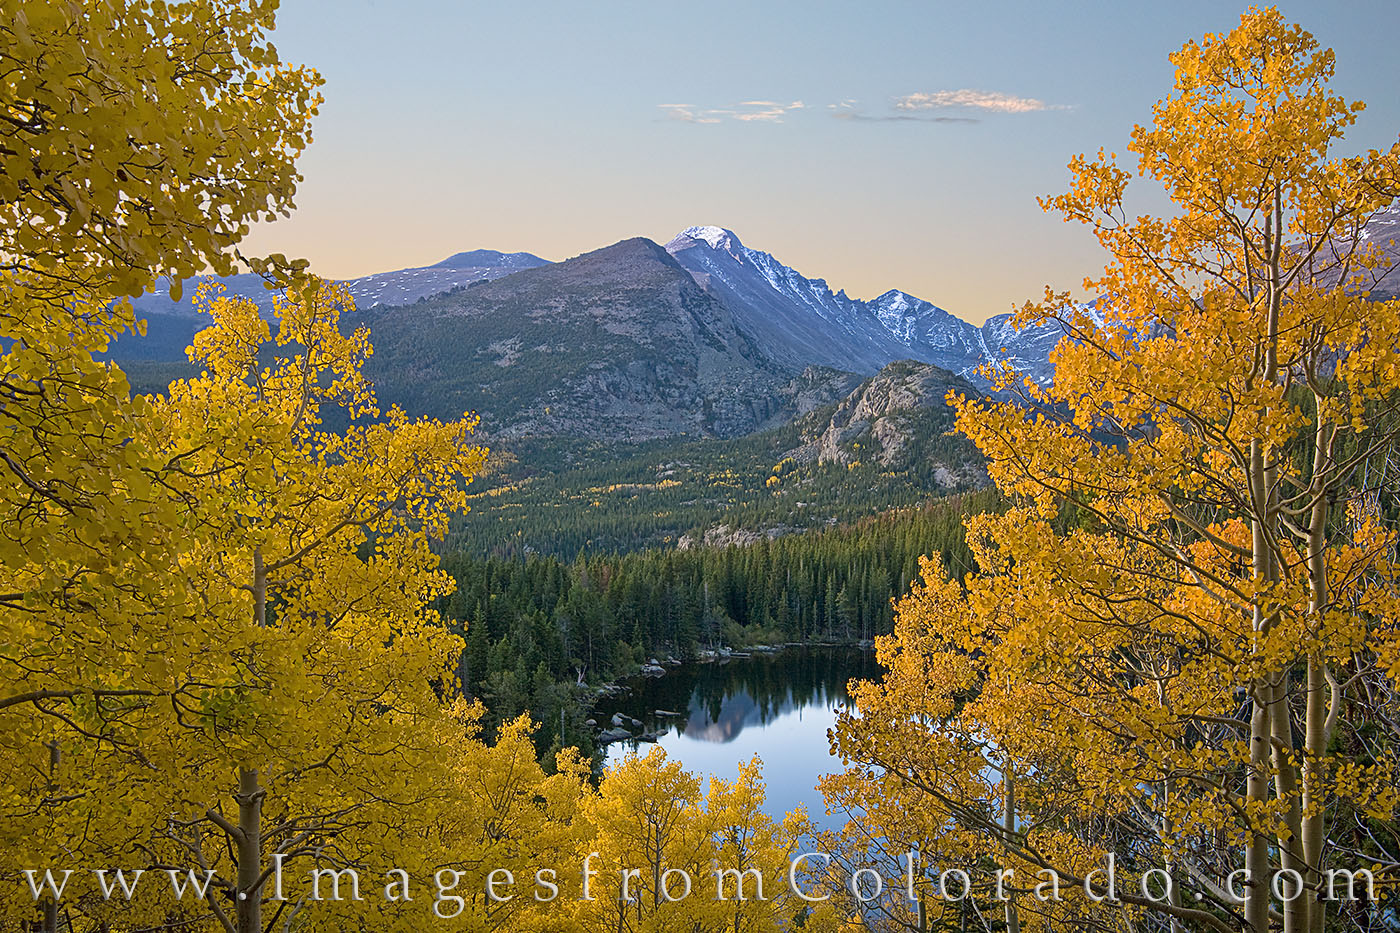 aspen, longs peak, bear lake, rocky mountain national park, rmnp, autumn, gold, 14ers, photo